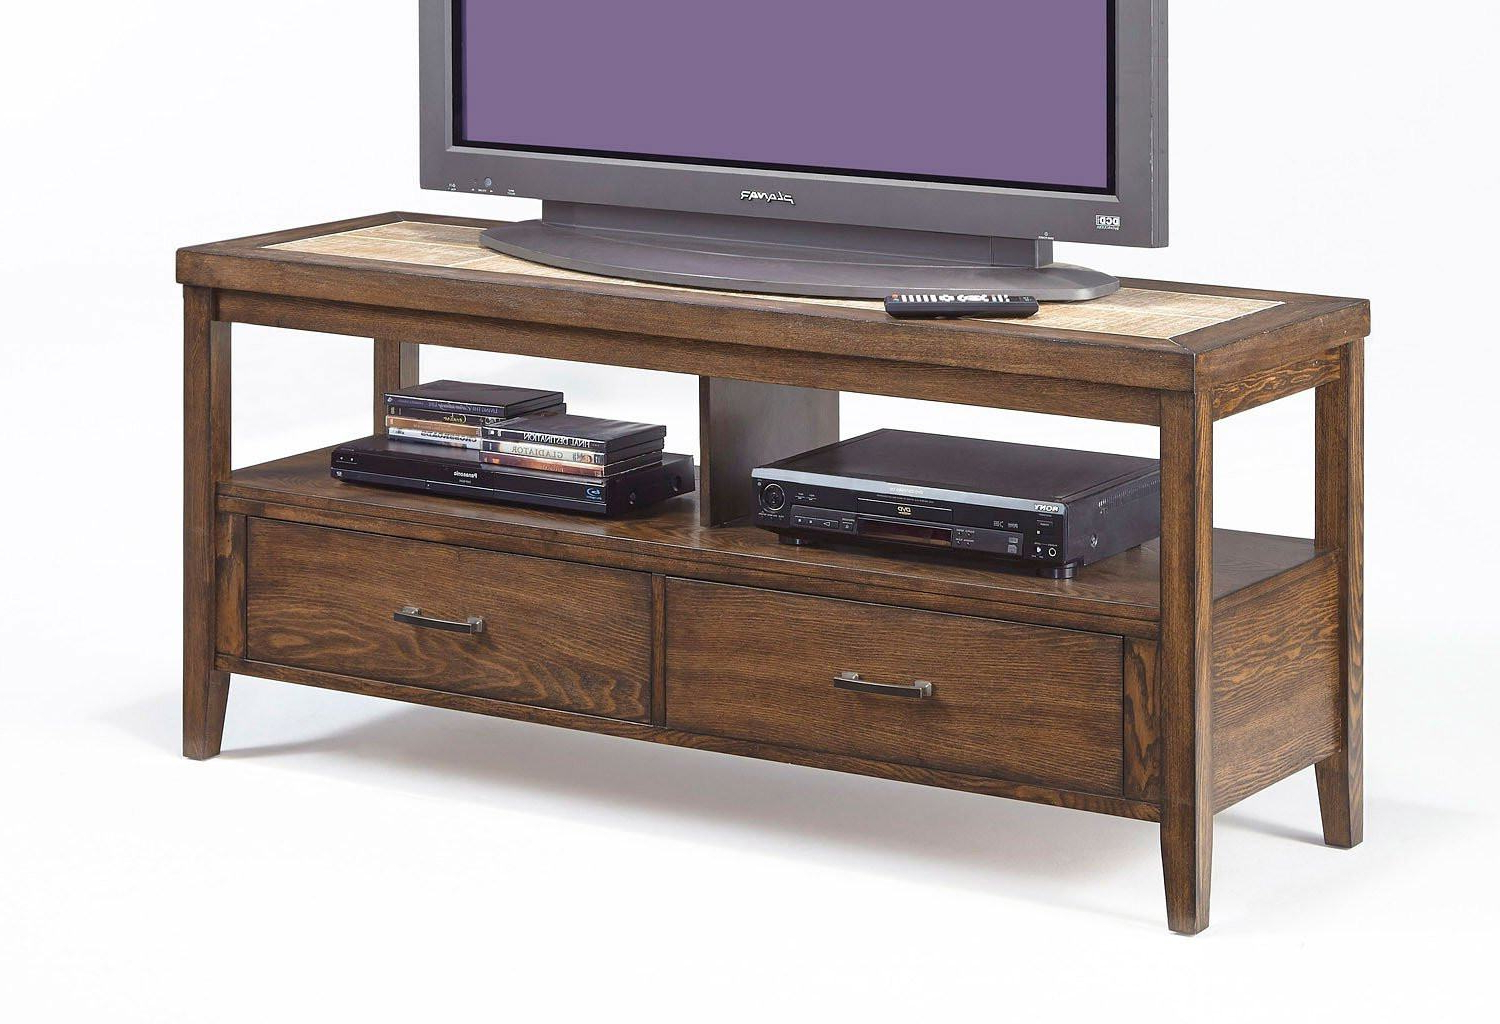 25 Creative 54 Inch Tv Stand Pictures | Cakestandlady With Sinclair White 54 Inch Tv Stands (View 18 of 20)